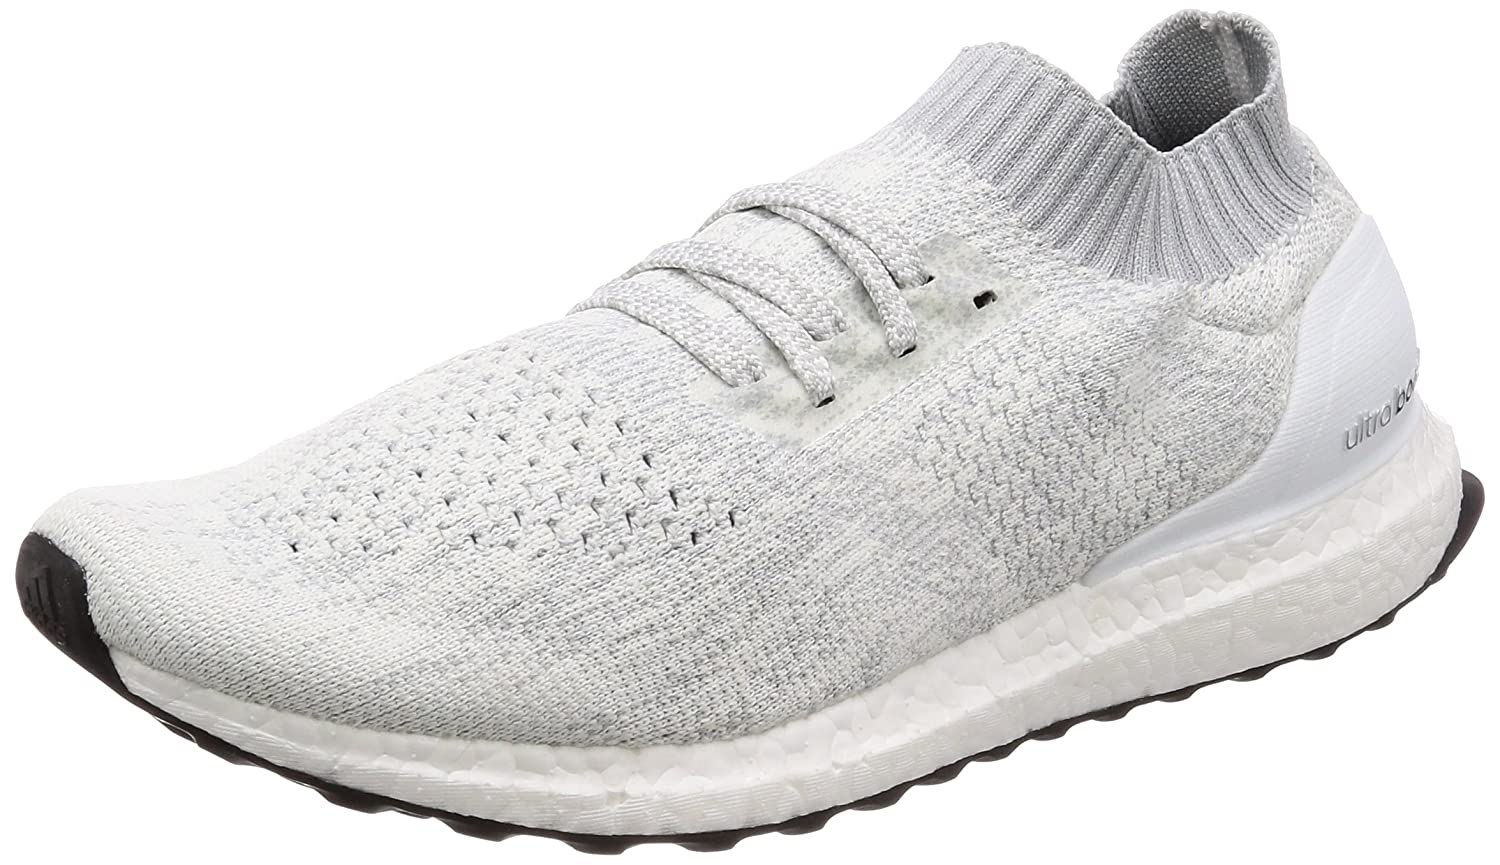 sports shoes dccce ce1c7 Amazon.com | Adidas Ultraboost Uncaged Mens Sneakers White ...